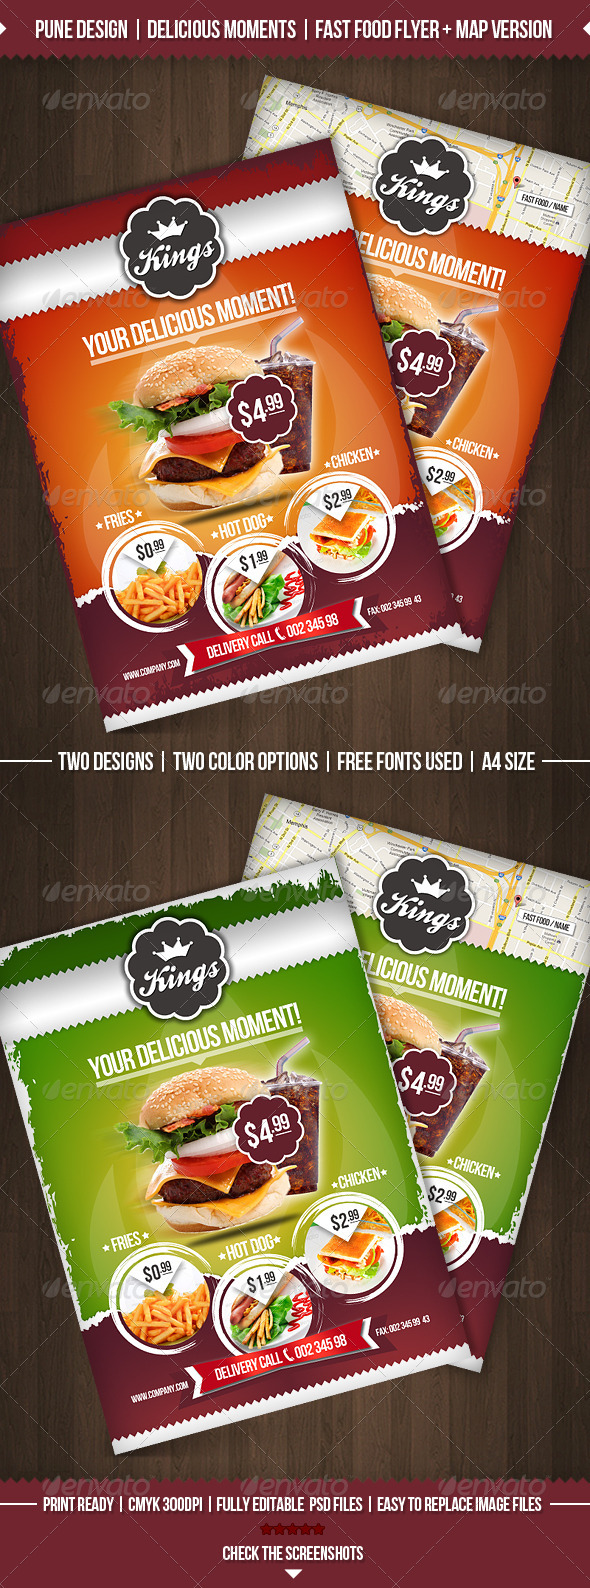 Delicious Moments | Fast Food Flyer Template - Restaurant Flyers